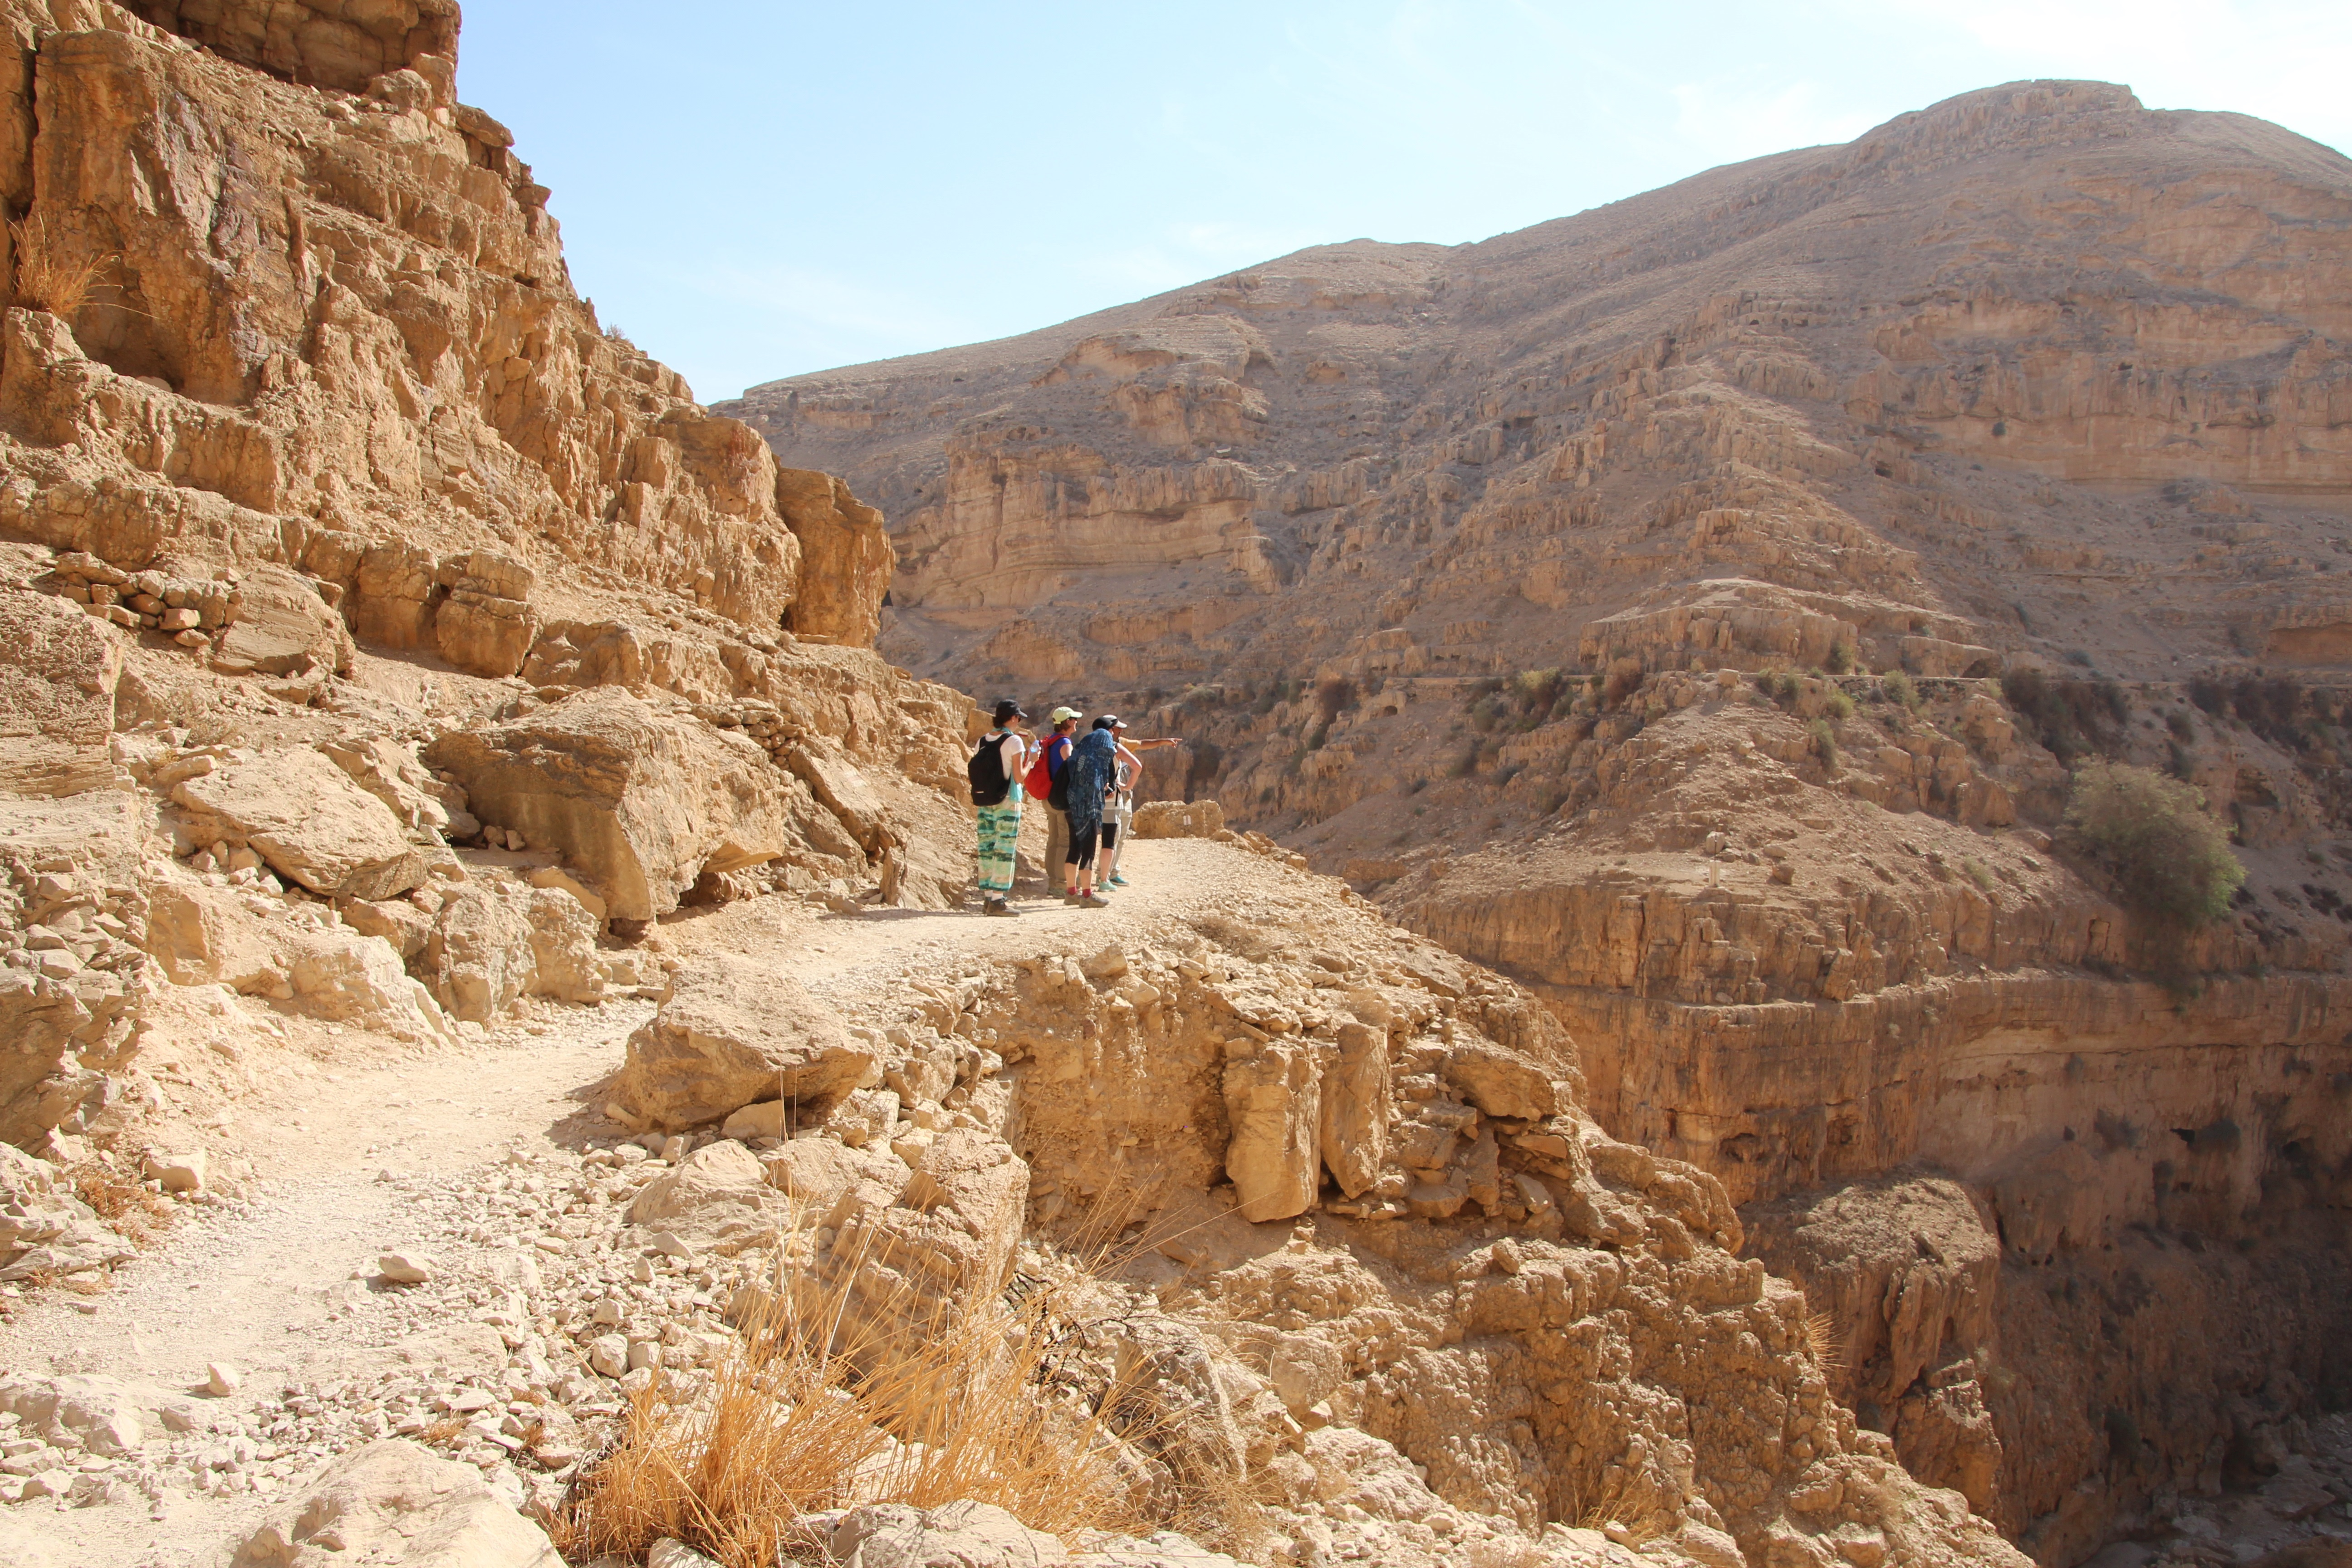 Hiking from Wadi Qelt to Jericho - Photo Credit: Crooked Compass